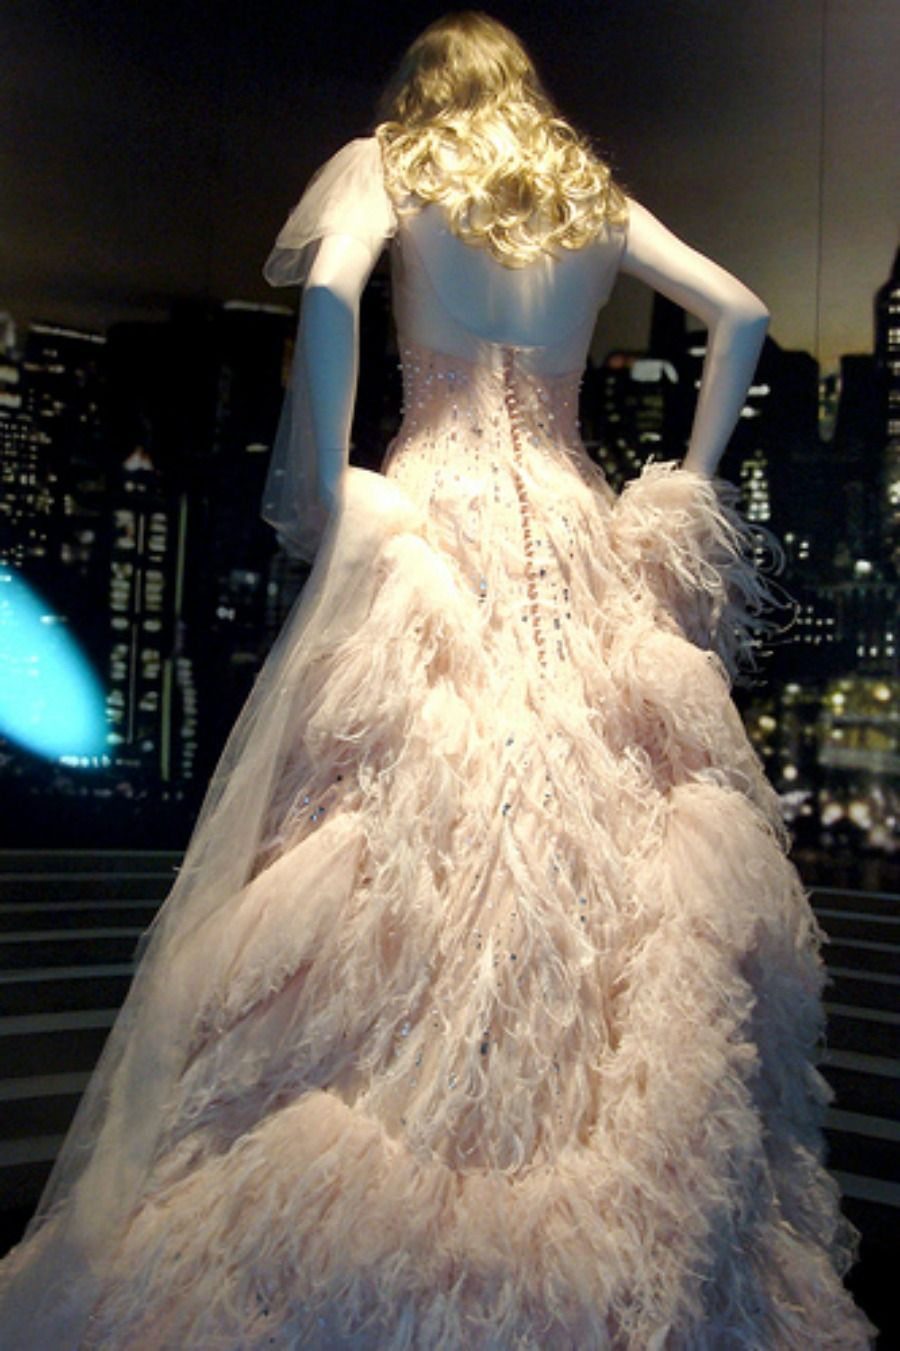 Chanel 5 Dress Worn By Nicole Kidman Your Clothes Are All Made